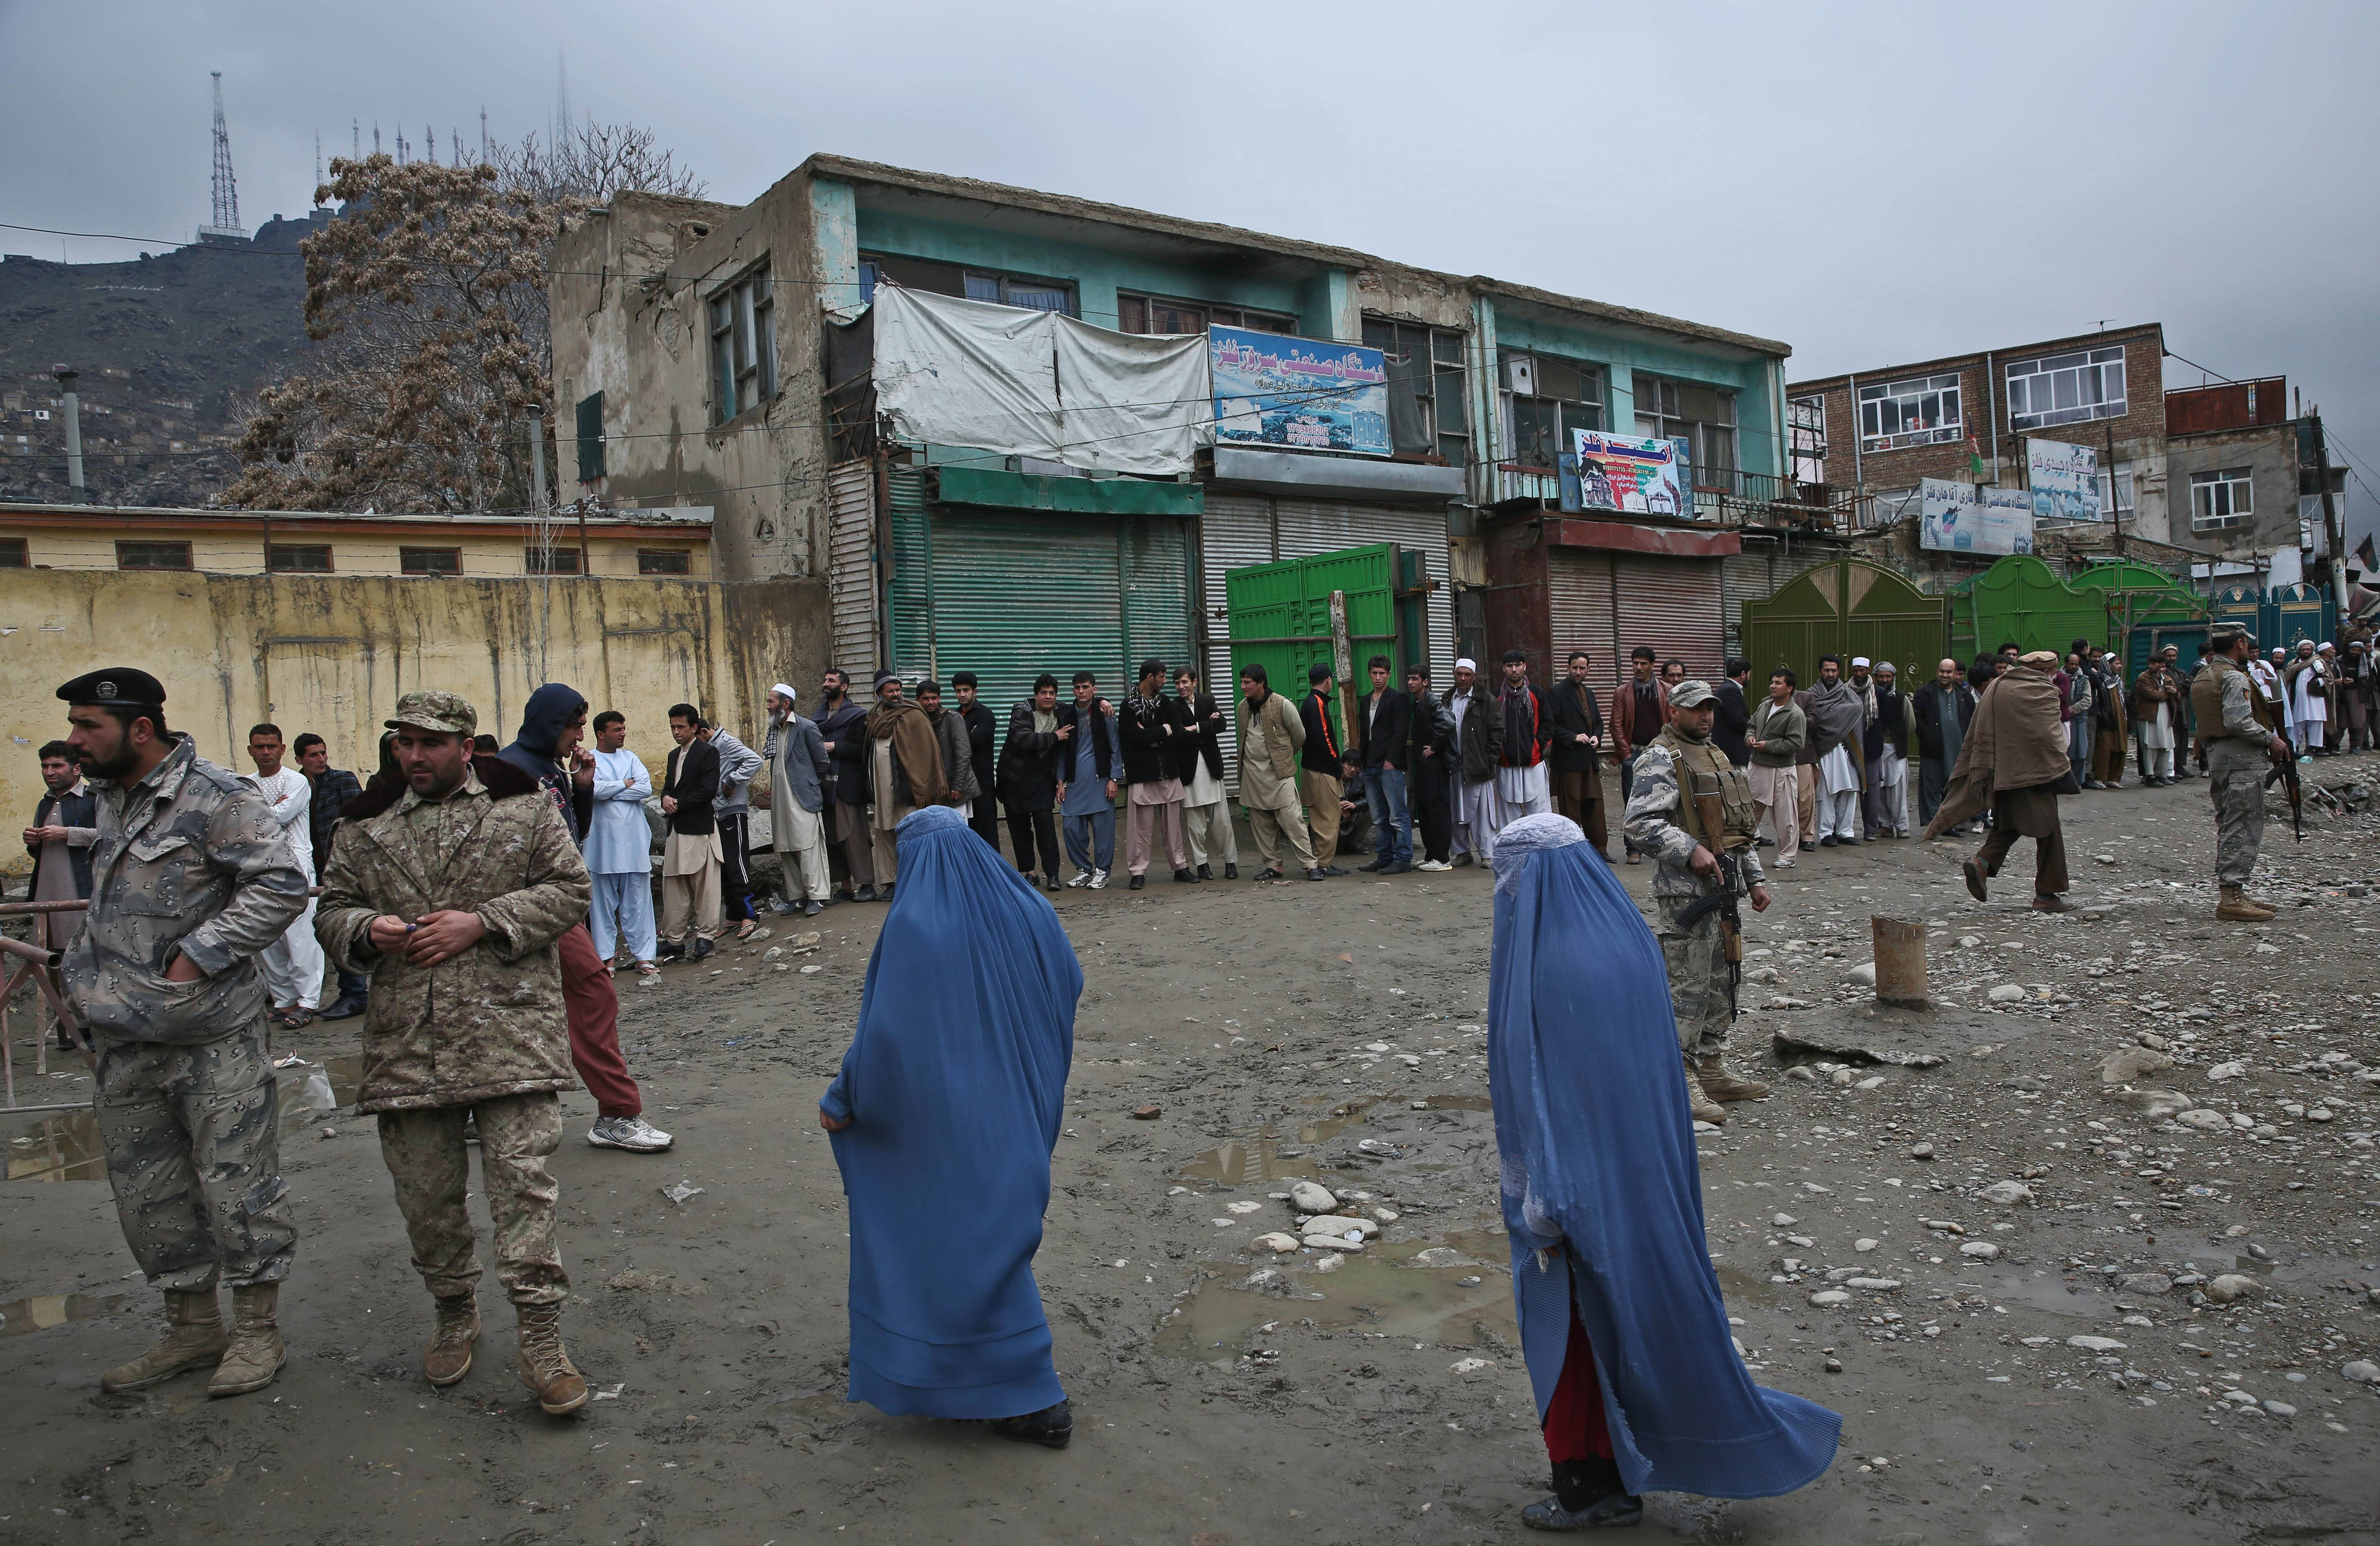 Afghan men line up for registration process before they cast their votes outside a polling station as burqa-clad women walk past the polling station in Kabul, Afghanistan, Saturday.